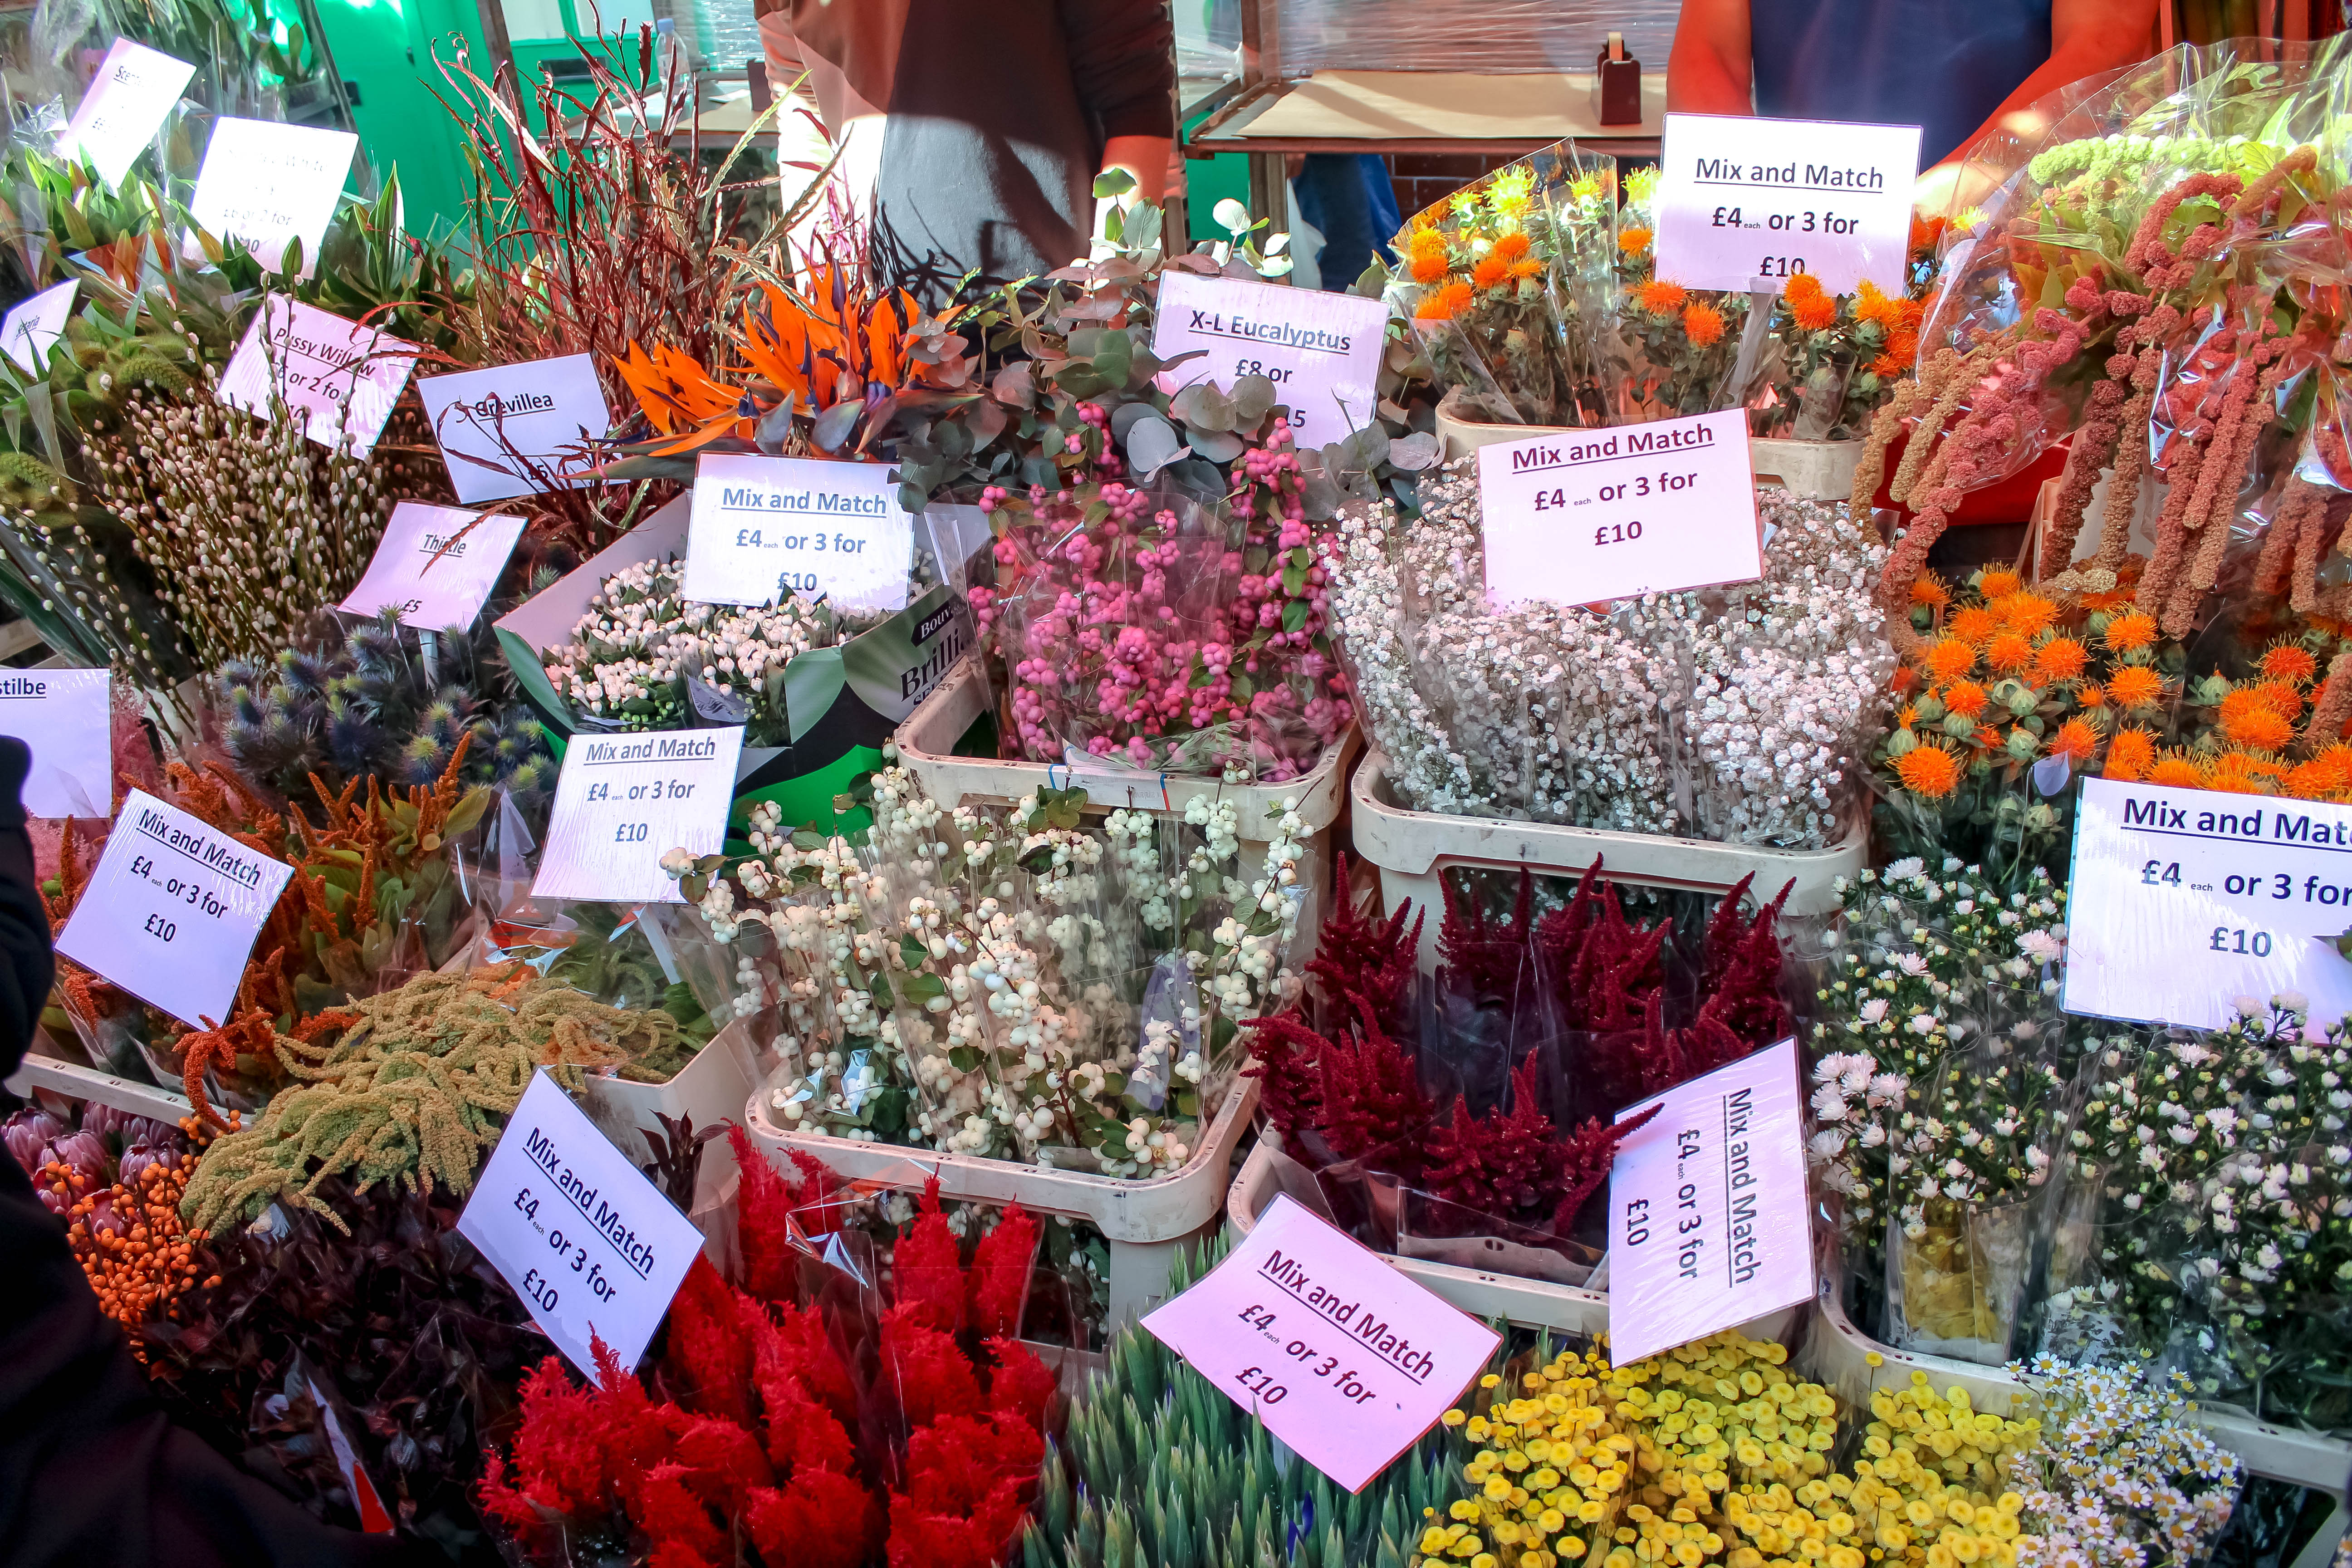 Columbia Road Flower Market + Campania